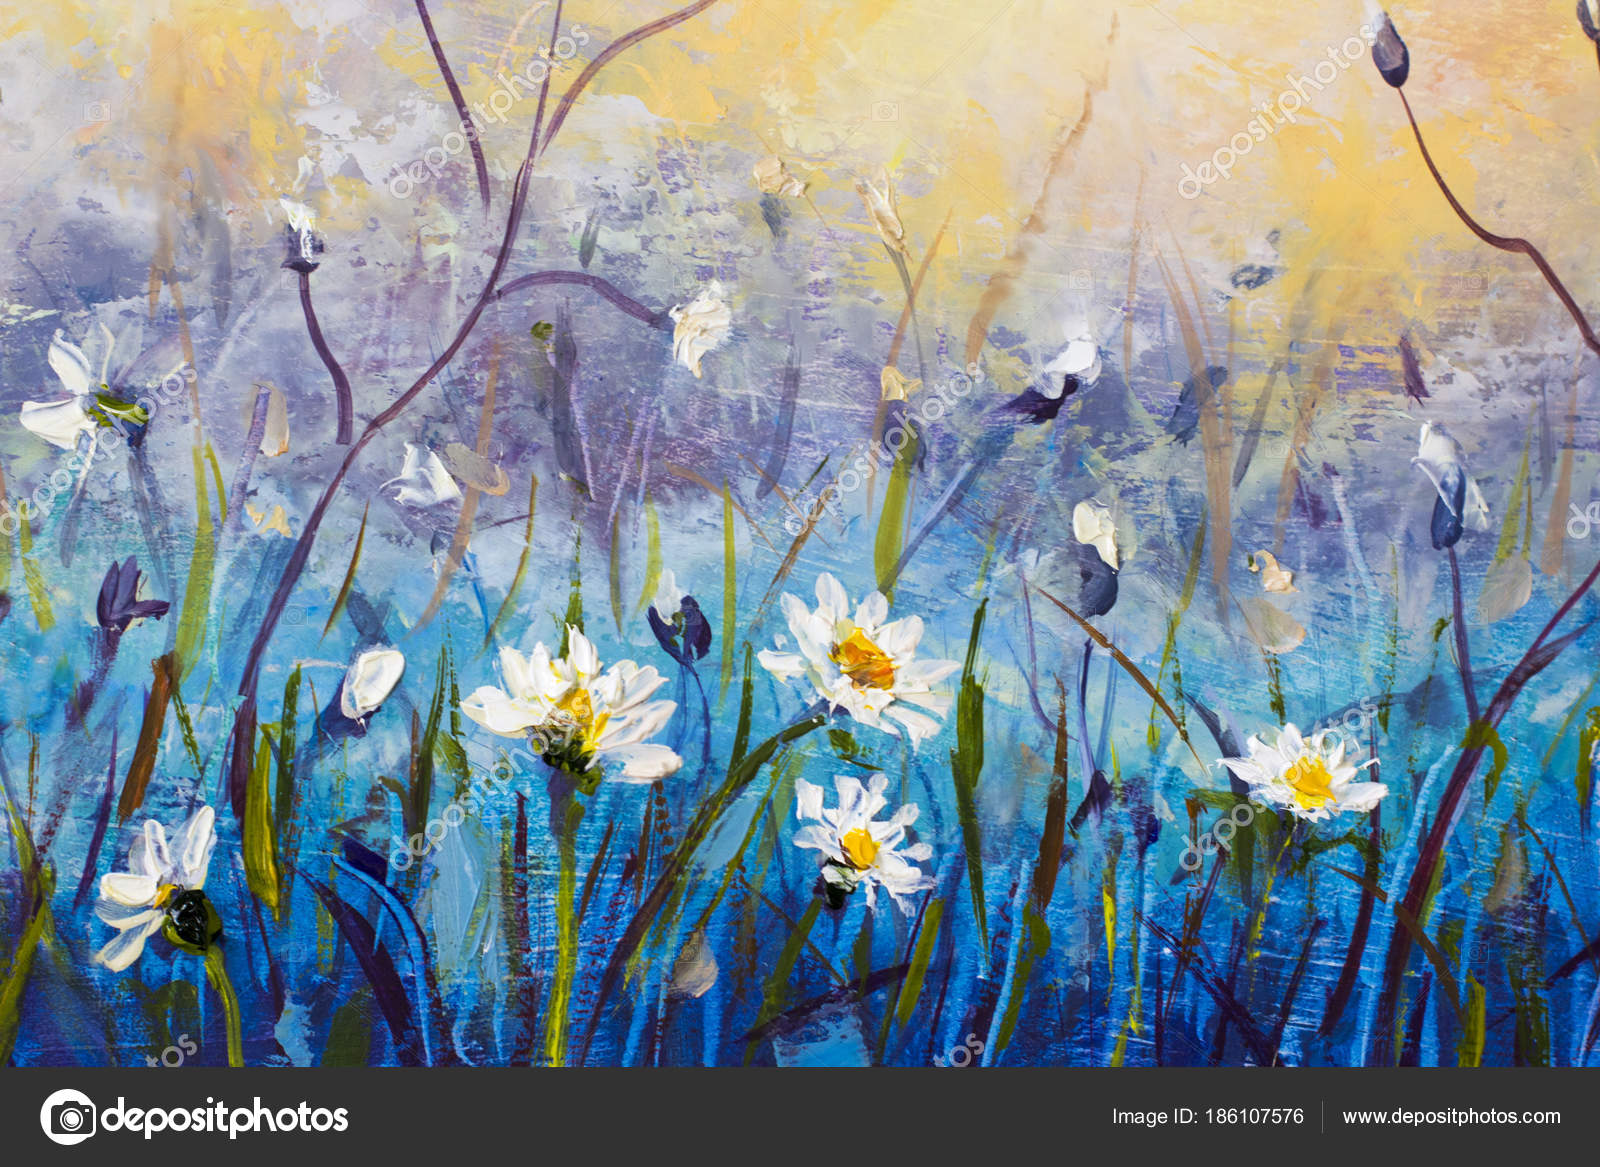 Original flowers oil painting wildflowers chamomile small white original flowers oil painting wildflowers chamomile small white flower blue stock photo mightylinksfo Gallery